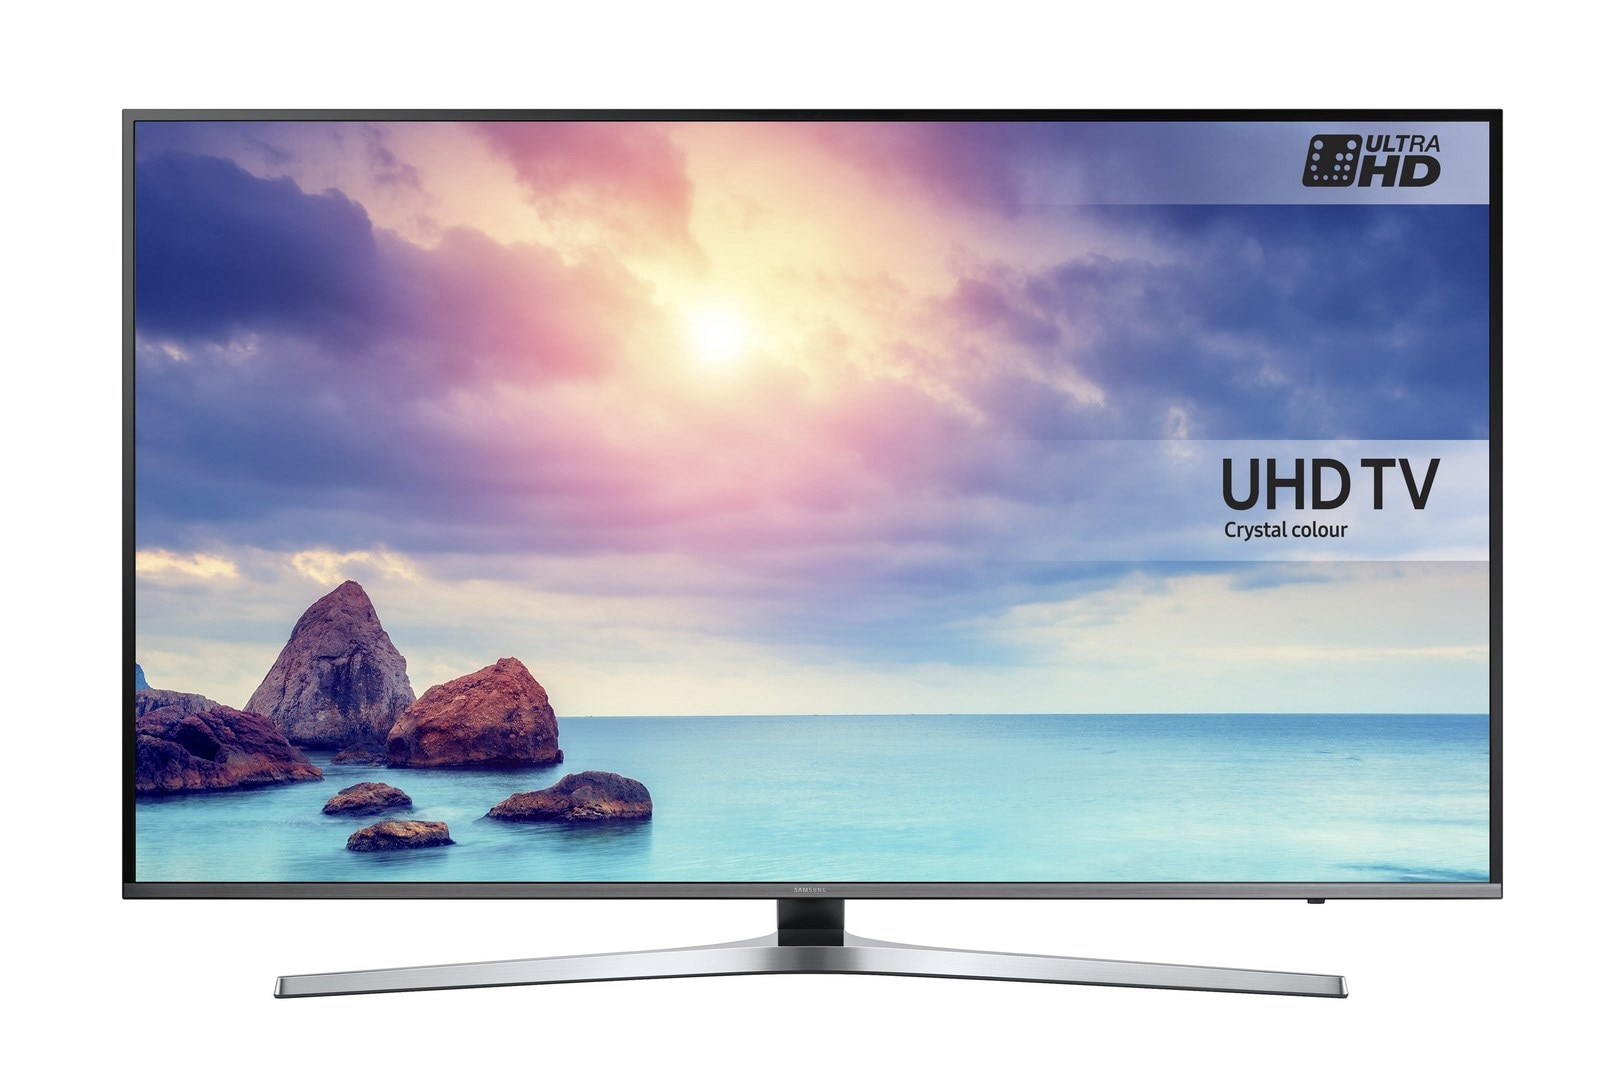 6-Series Crystal Color UHD TV UE40KU6470